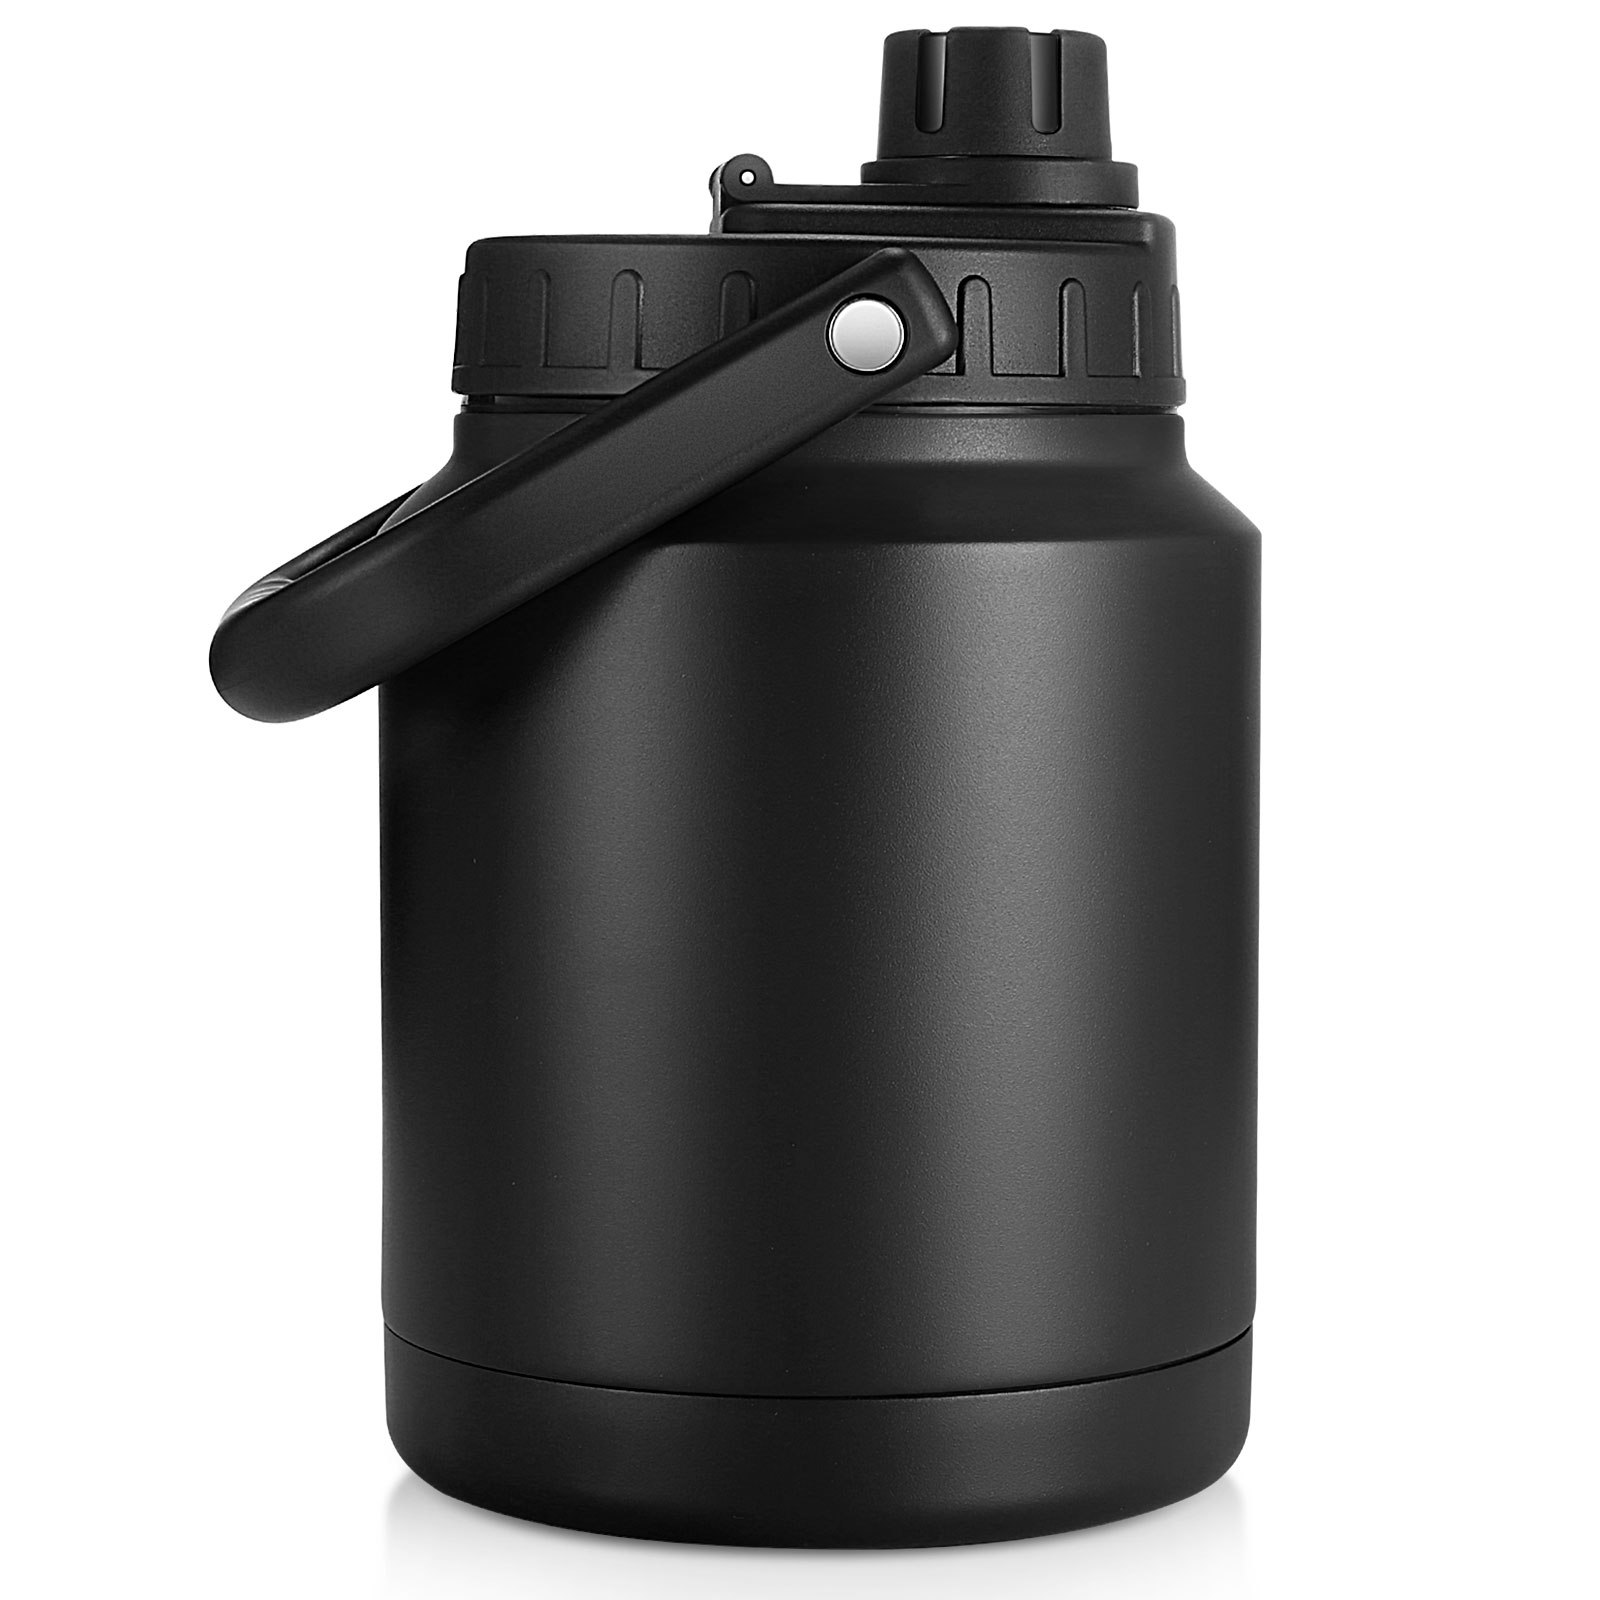 64 Oz Vacuum Insulated Water Bottle,Half Gallon Stainless Steel Double Walled Water Jug,18/8 Food-Grade Stainless Steel Insulated Water Bottle for Hot and Cold Drinks Water Flask,Black